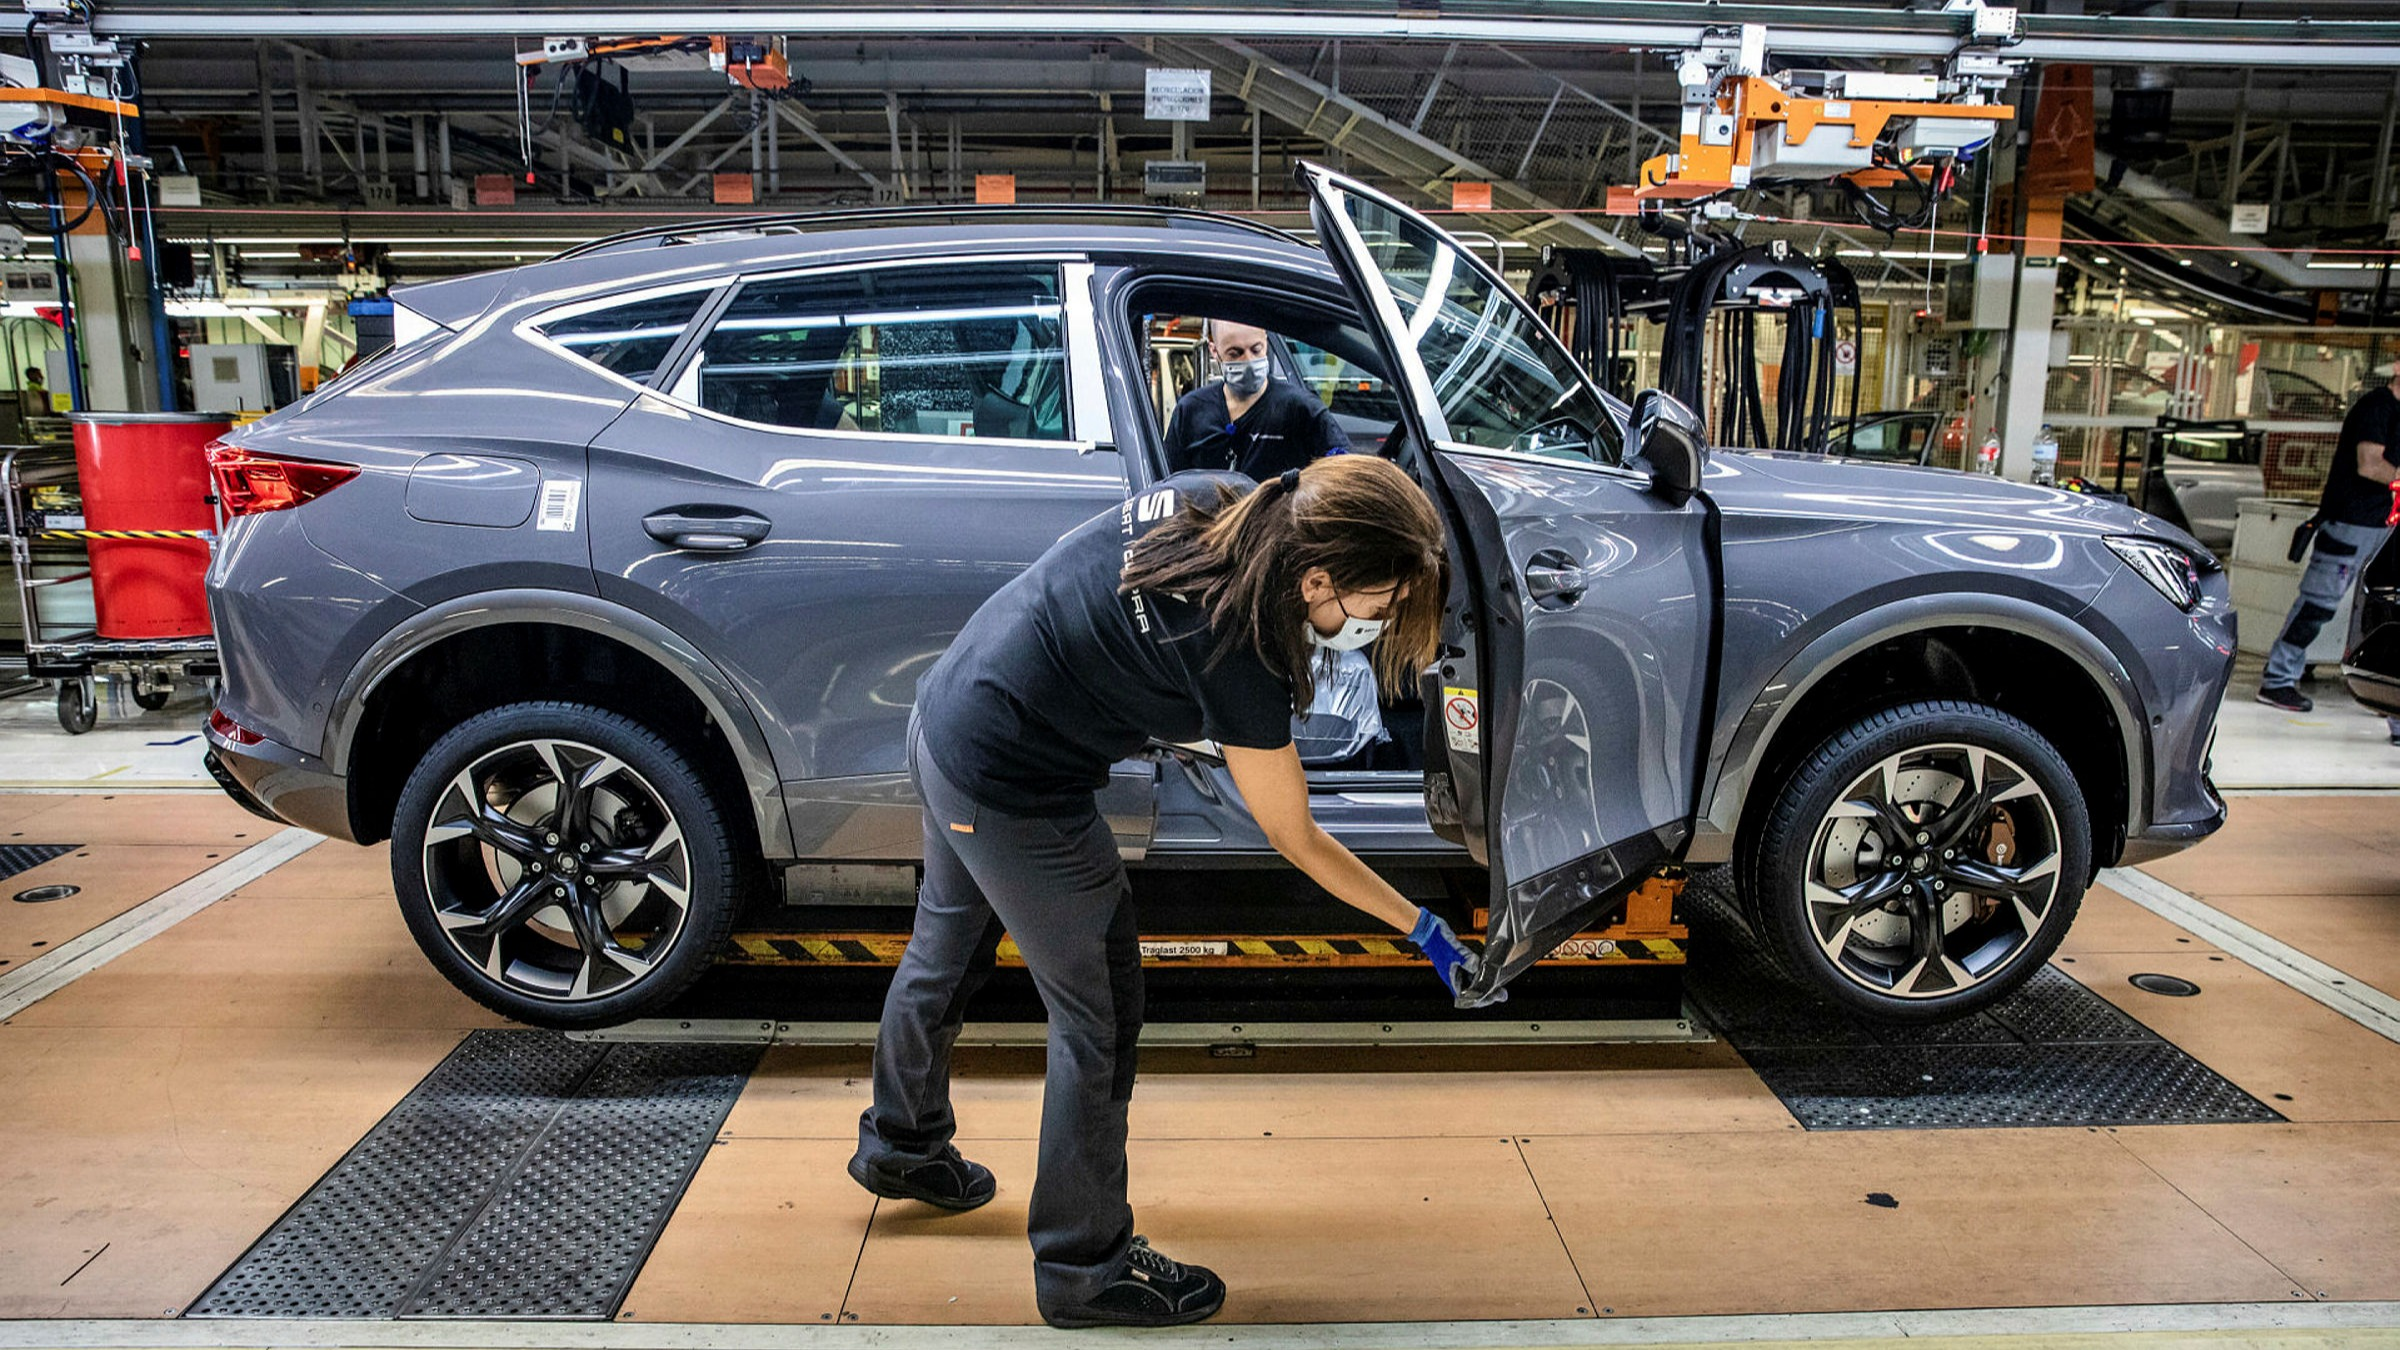 HIGHLIGHTED SPAIN REGULATIONS IN CAR SECTOR